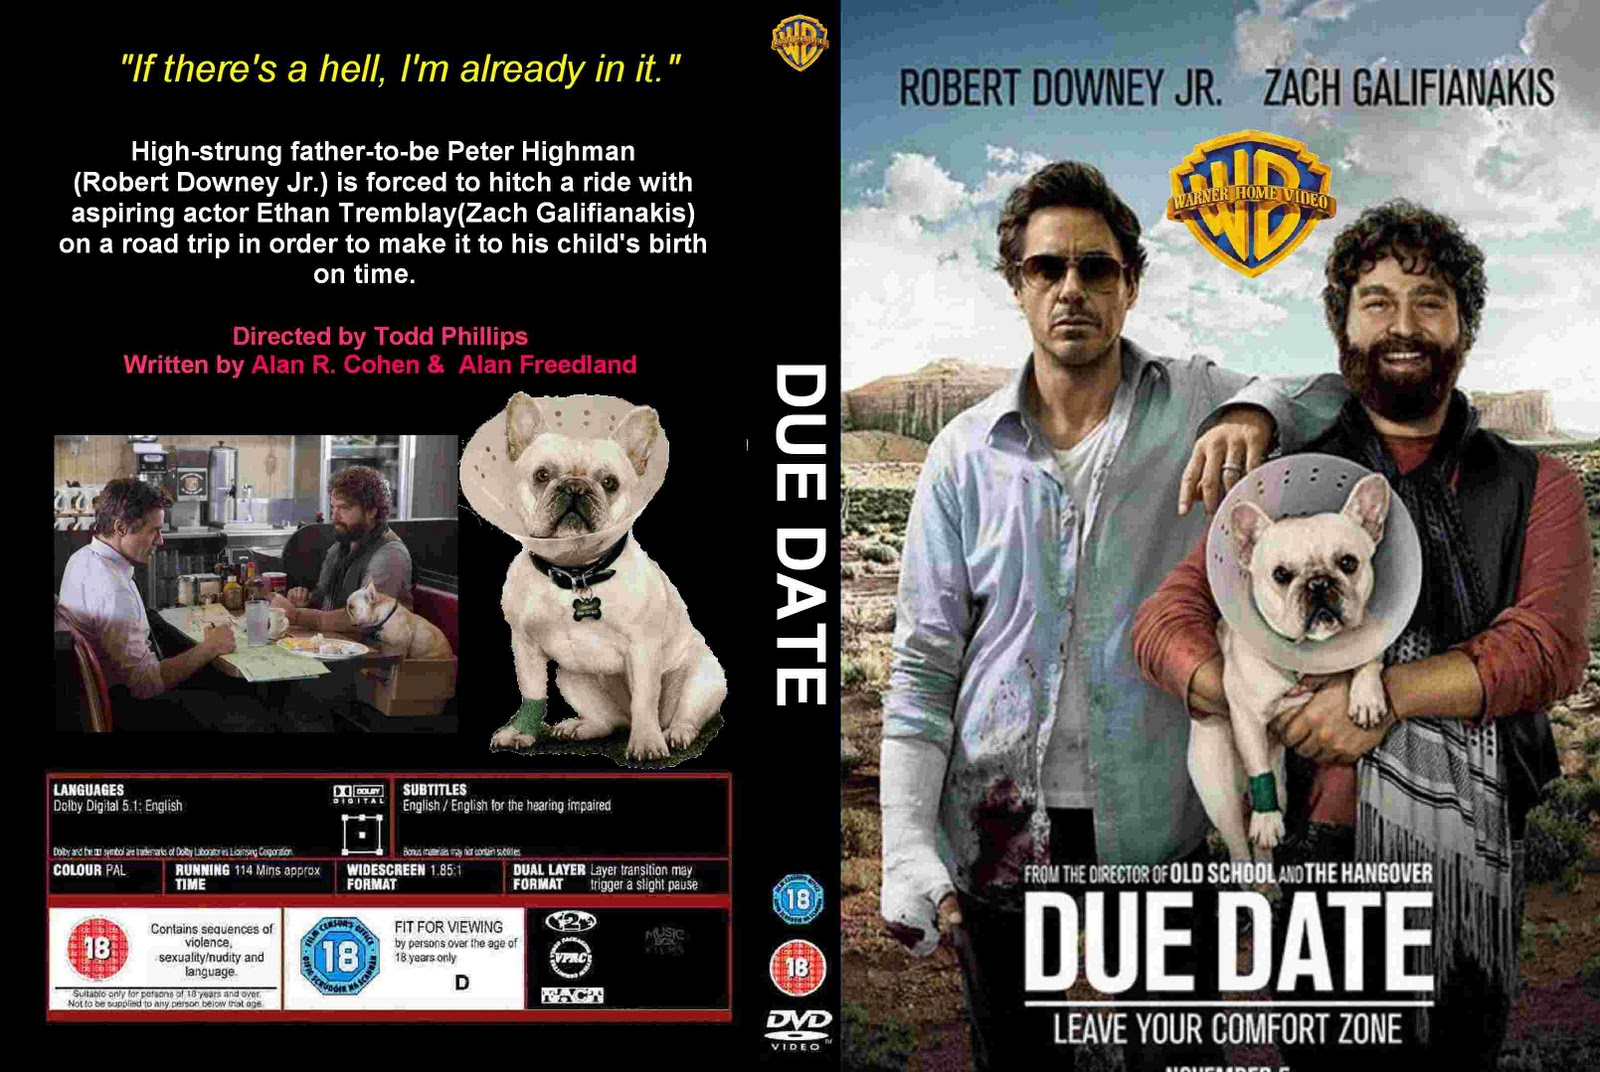 due date trailer hd play and stream due date hd free online here ...